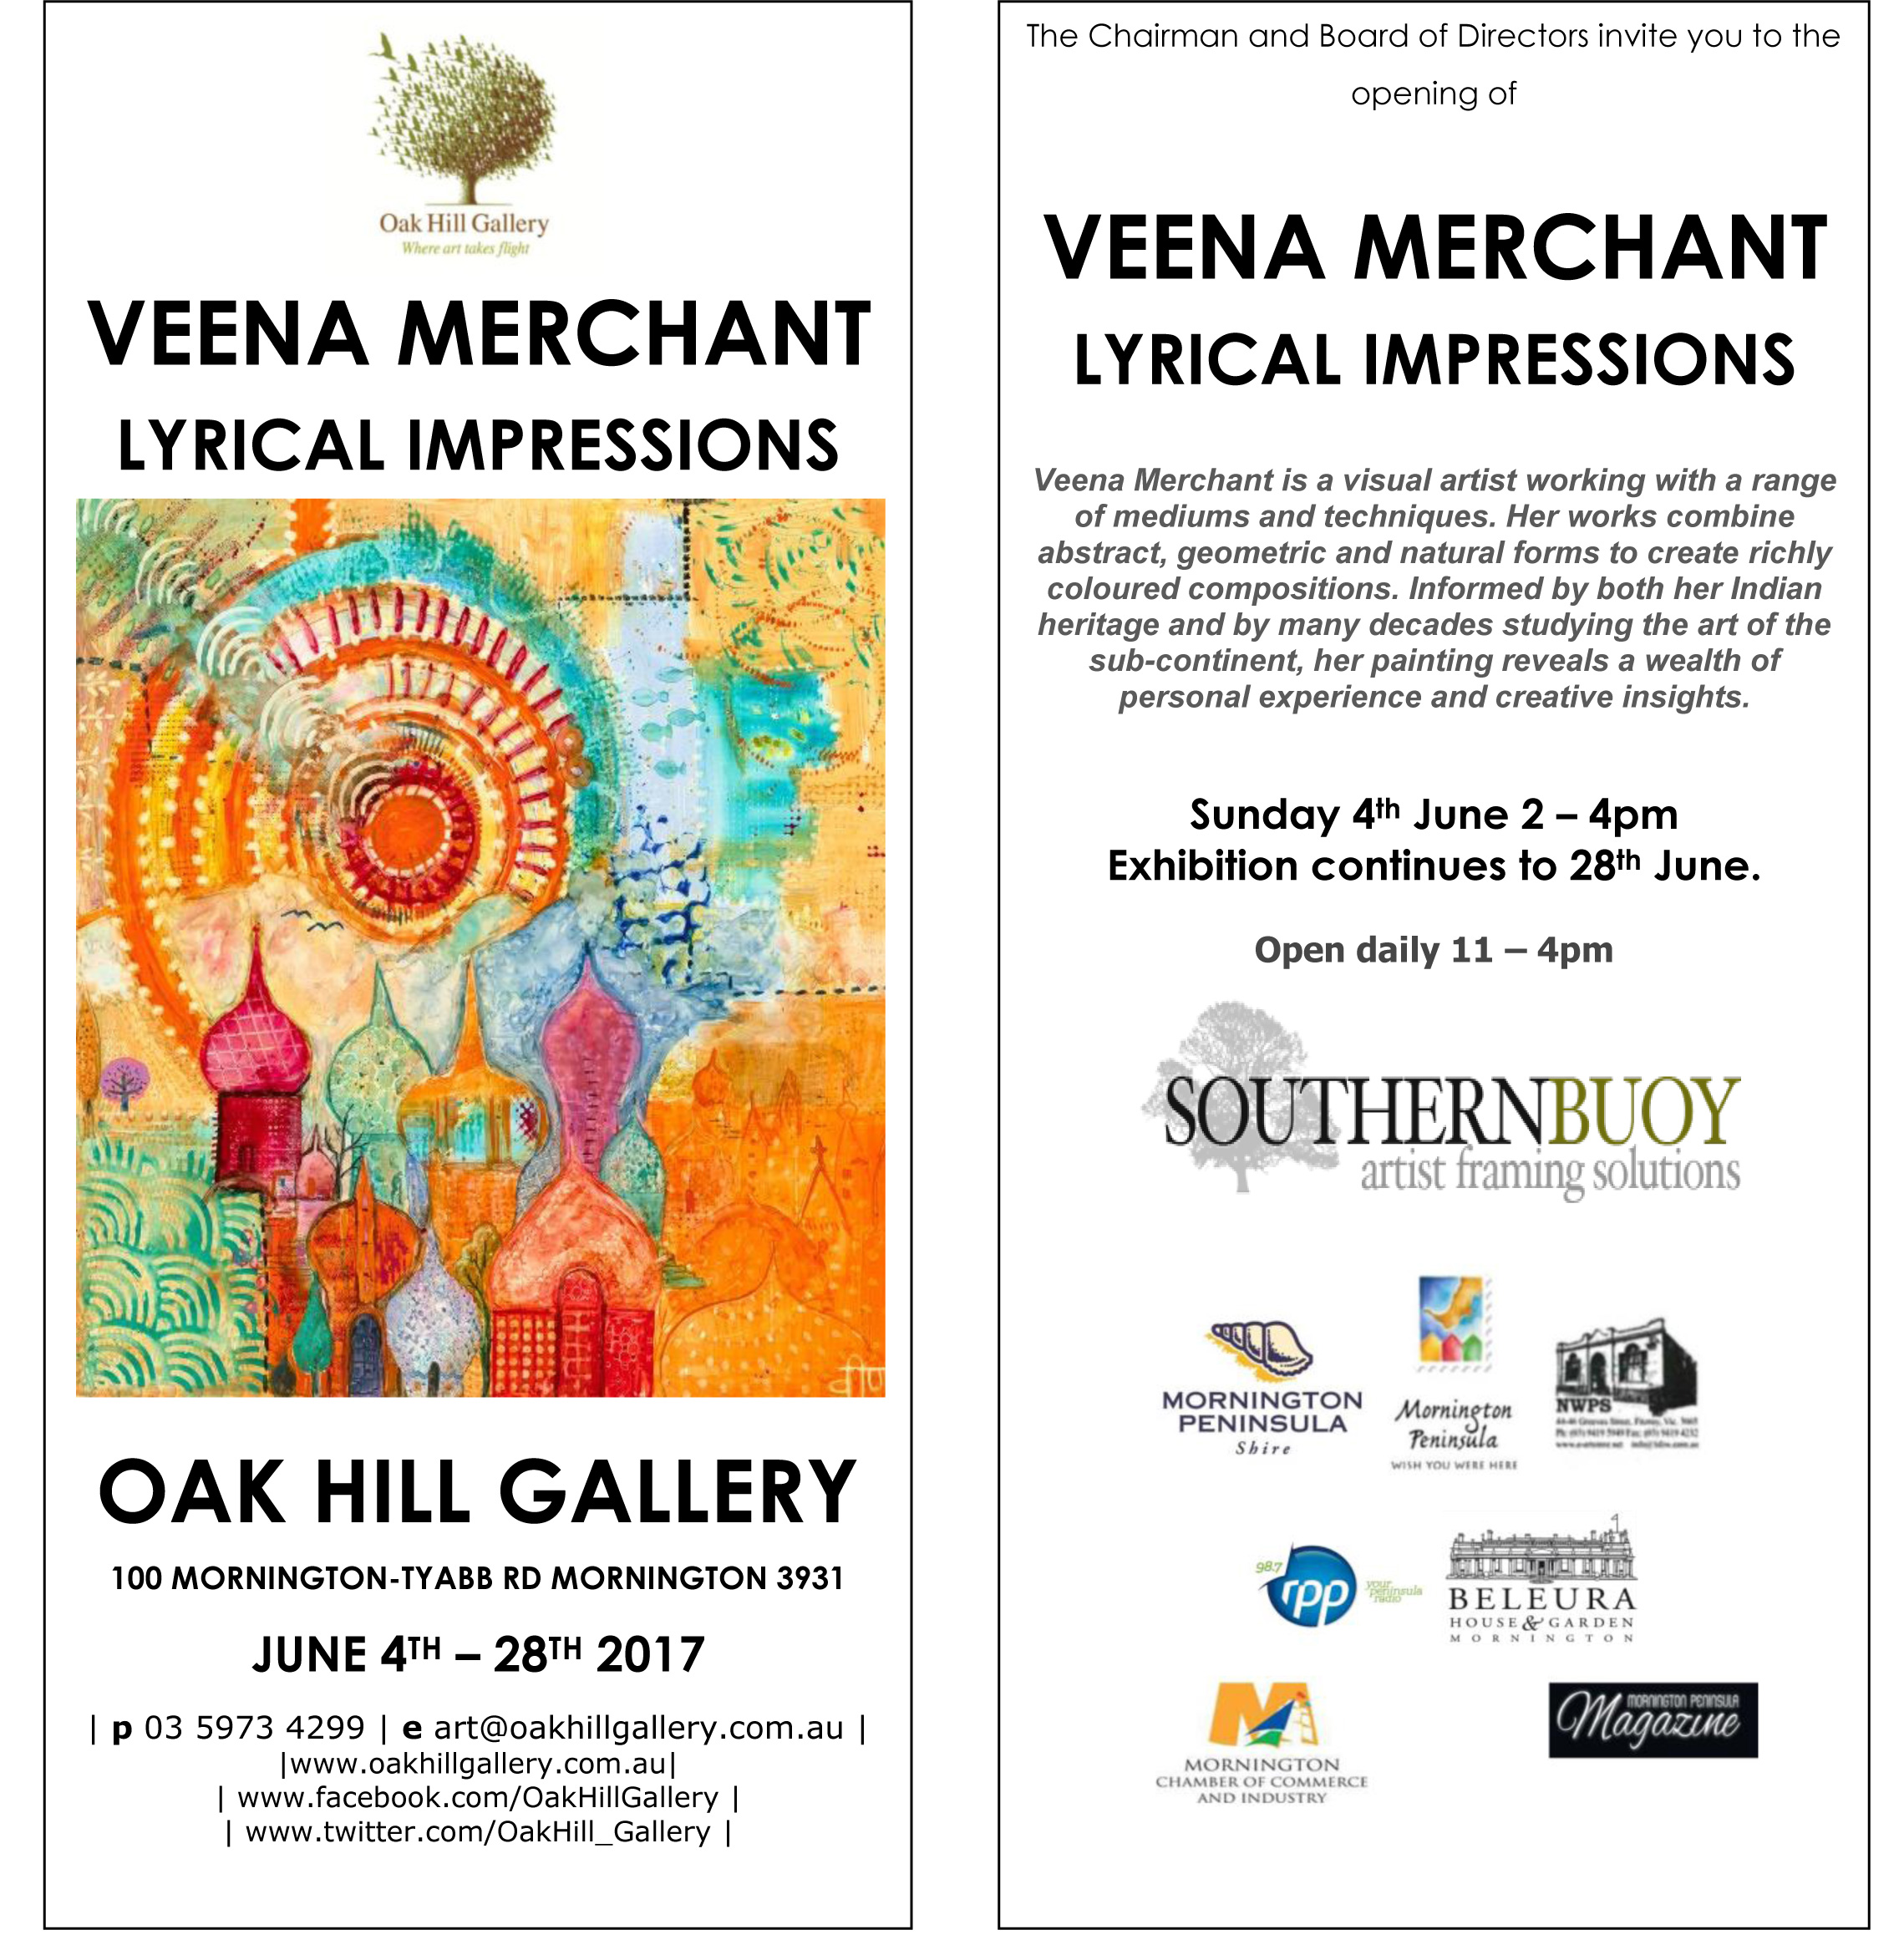 Veena-Merchant-Invite-1